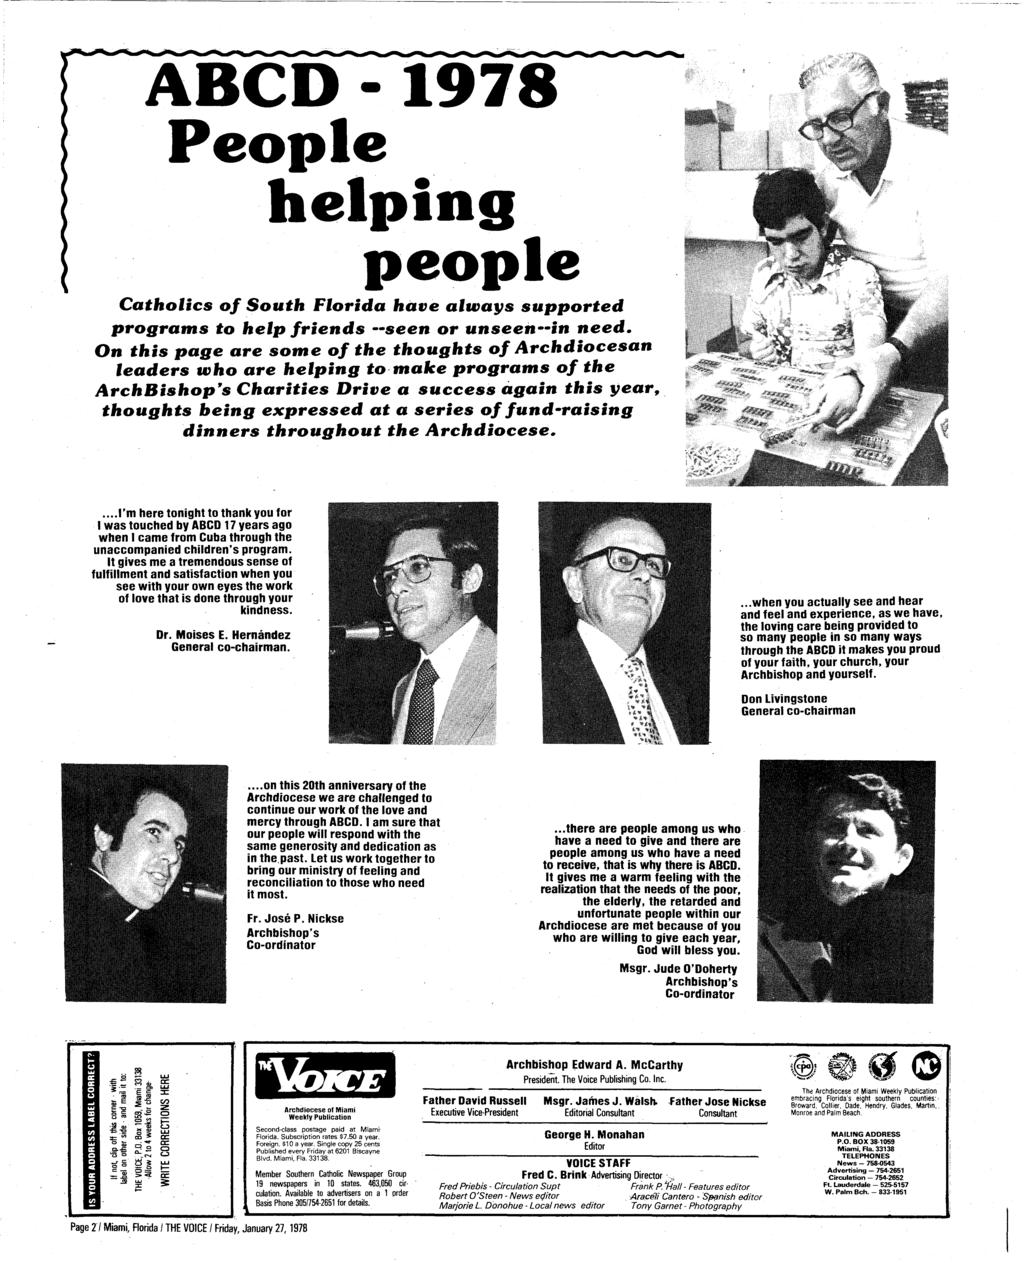 ABCD - 1978 People helping people Catholics of South Florida have always supported programs to help friends seen or unseen in need.